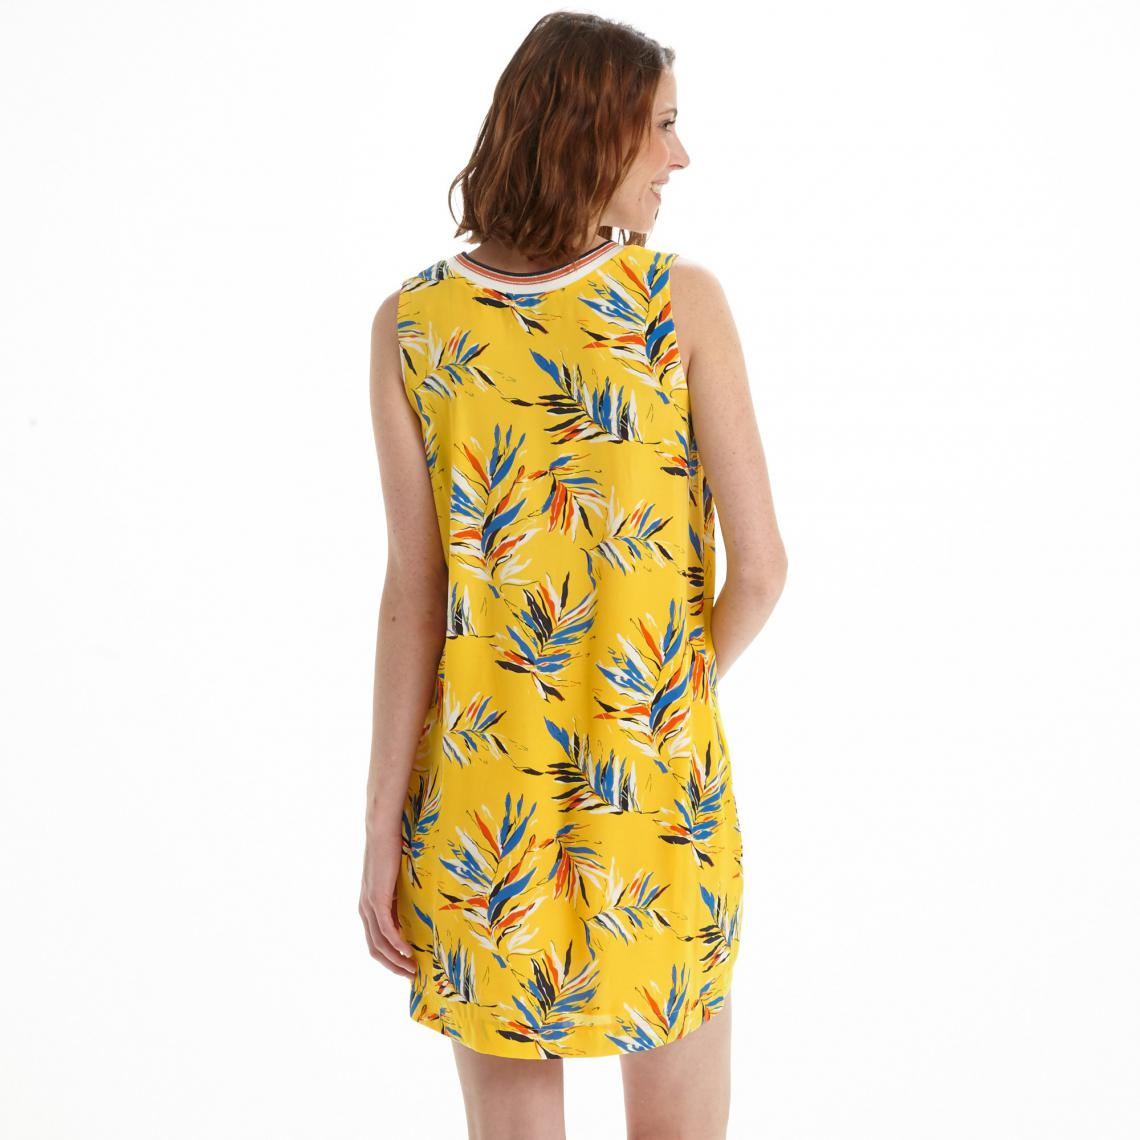 Robe courte femme Pepe Jeans - Jaune   3Suisses 4373db7743a6